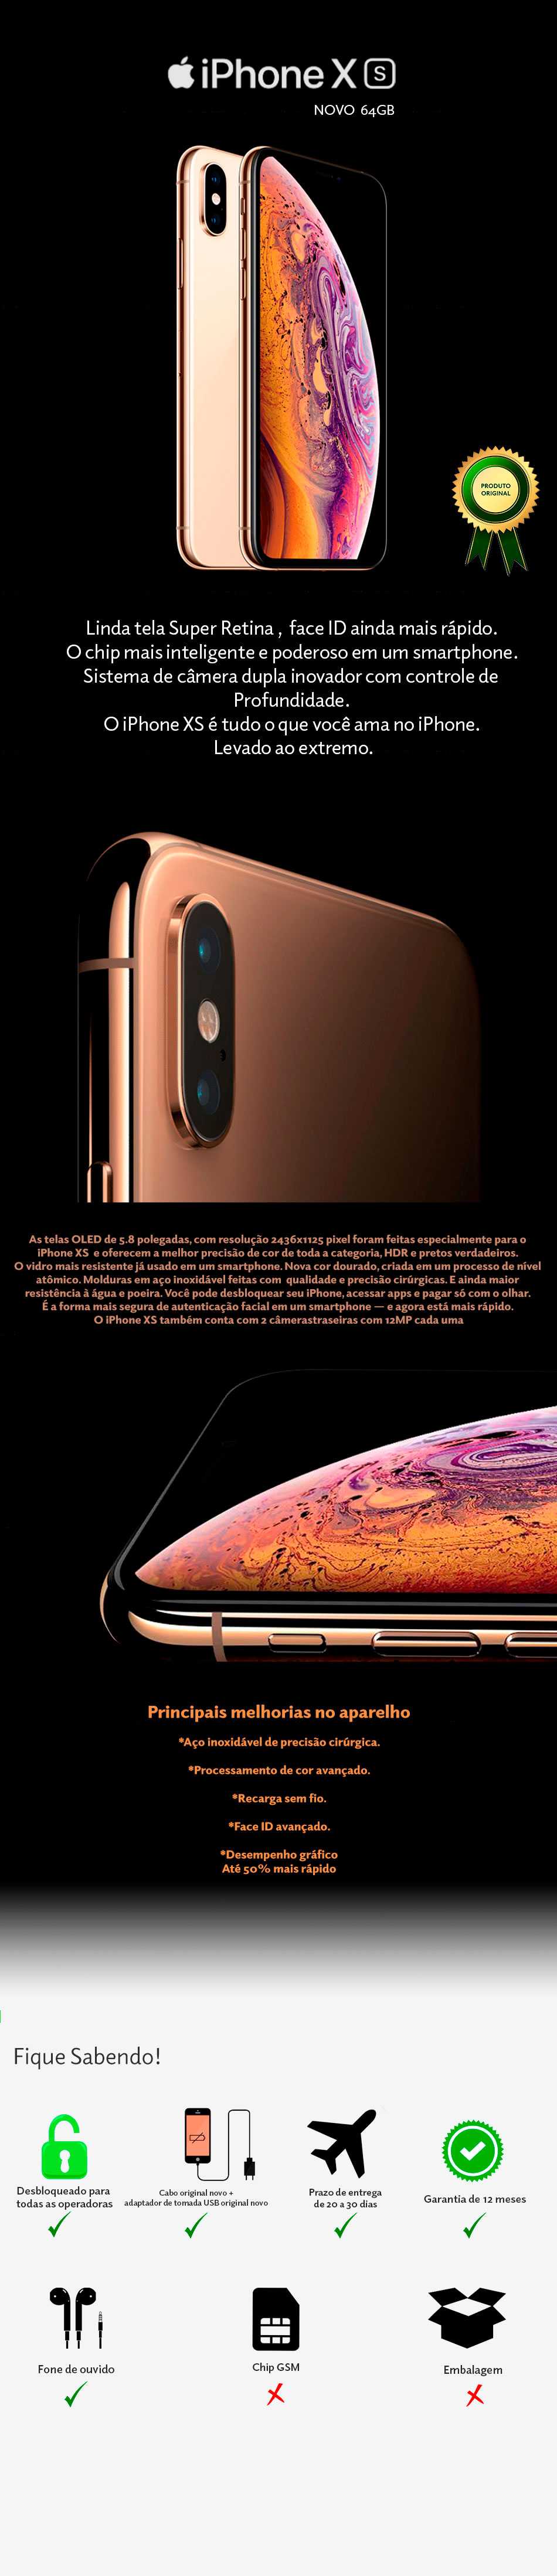 iPhone XS 64GB Novo